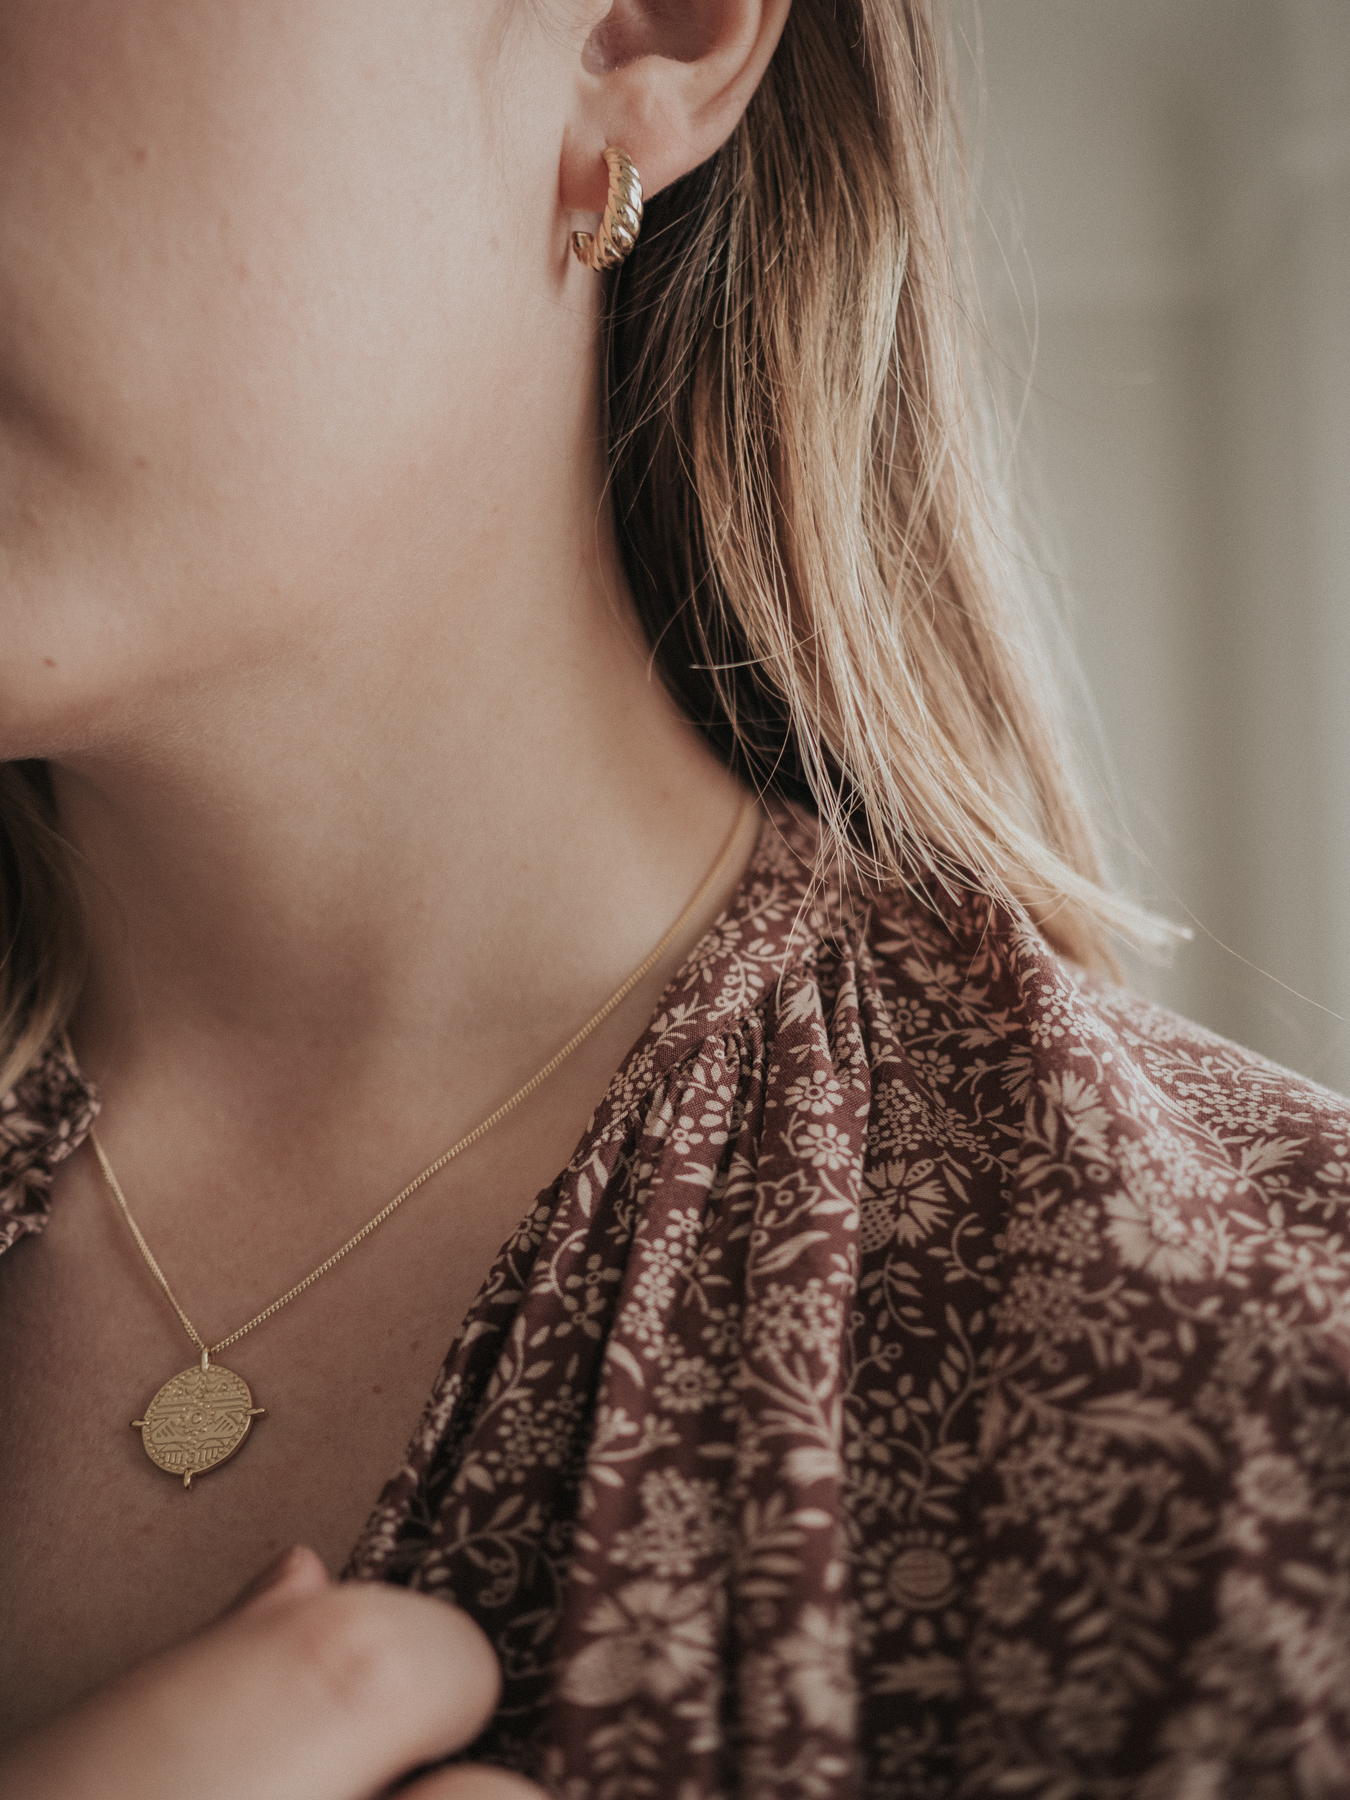 5 Affordable Jewelry Brands You Need to Know | Featuring sustainable, ethical, and affordable gold jewelry brands with beautiful designs